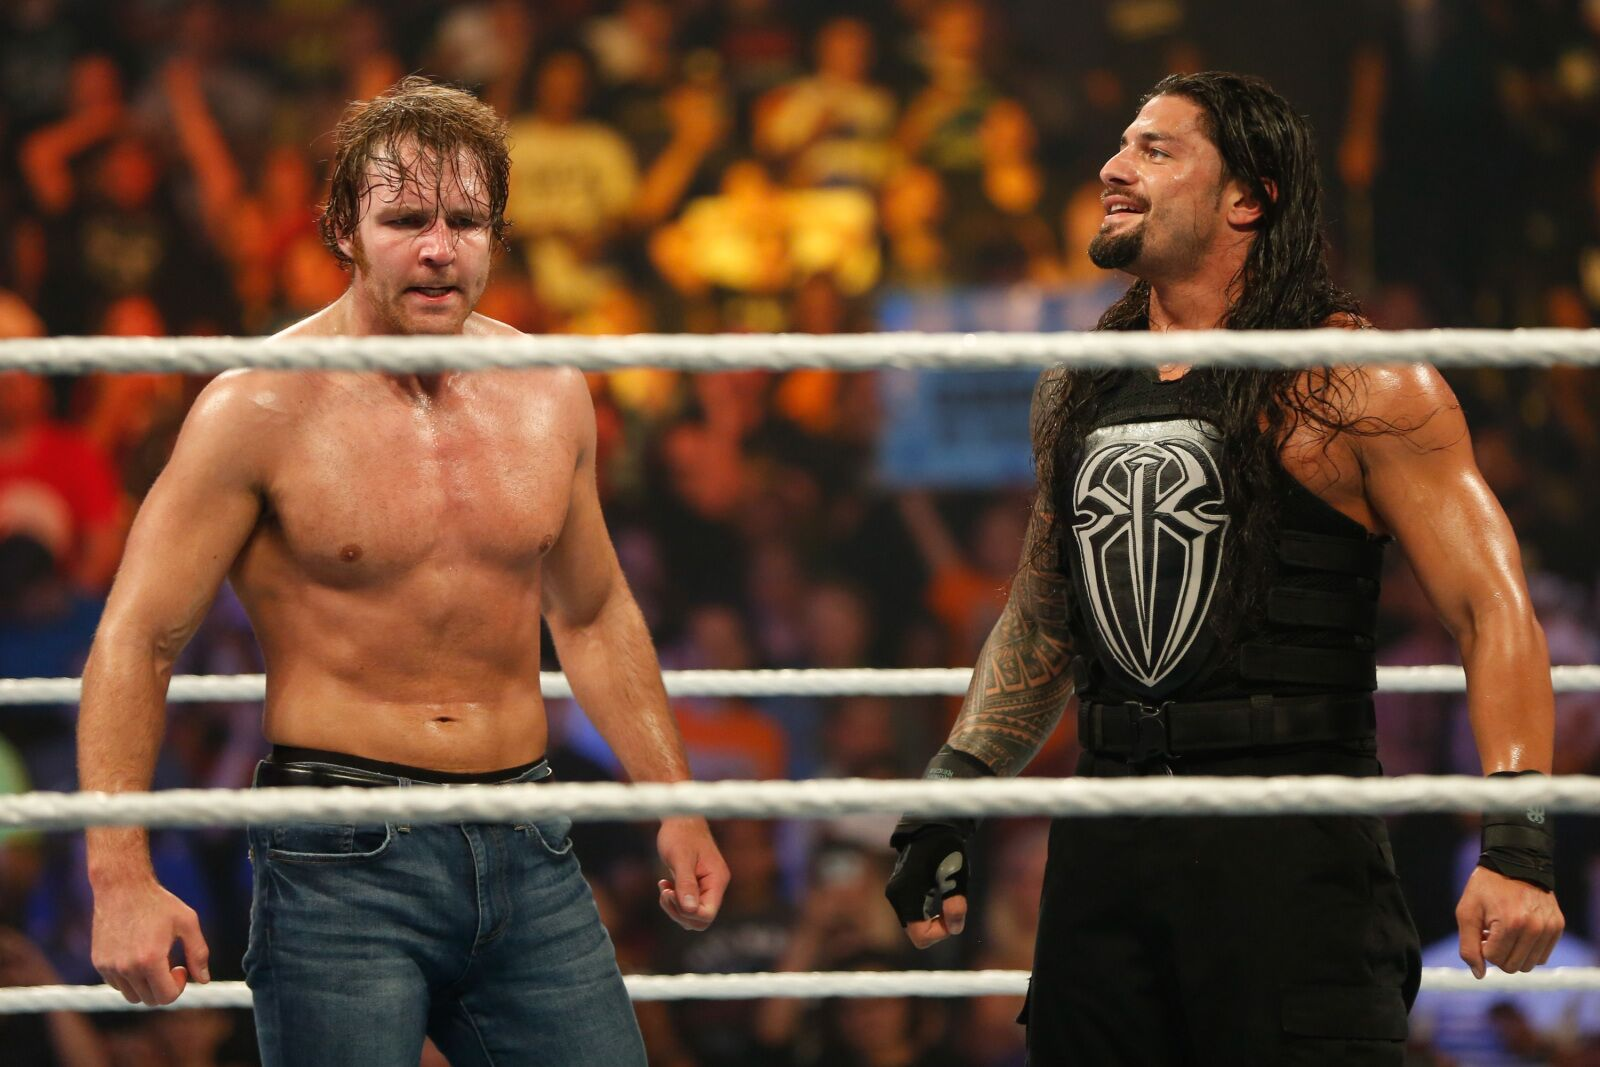 WWE: What does Jox Moxley's revival mean for the professional wrestling universe?